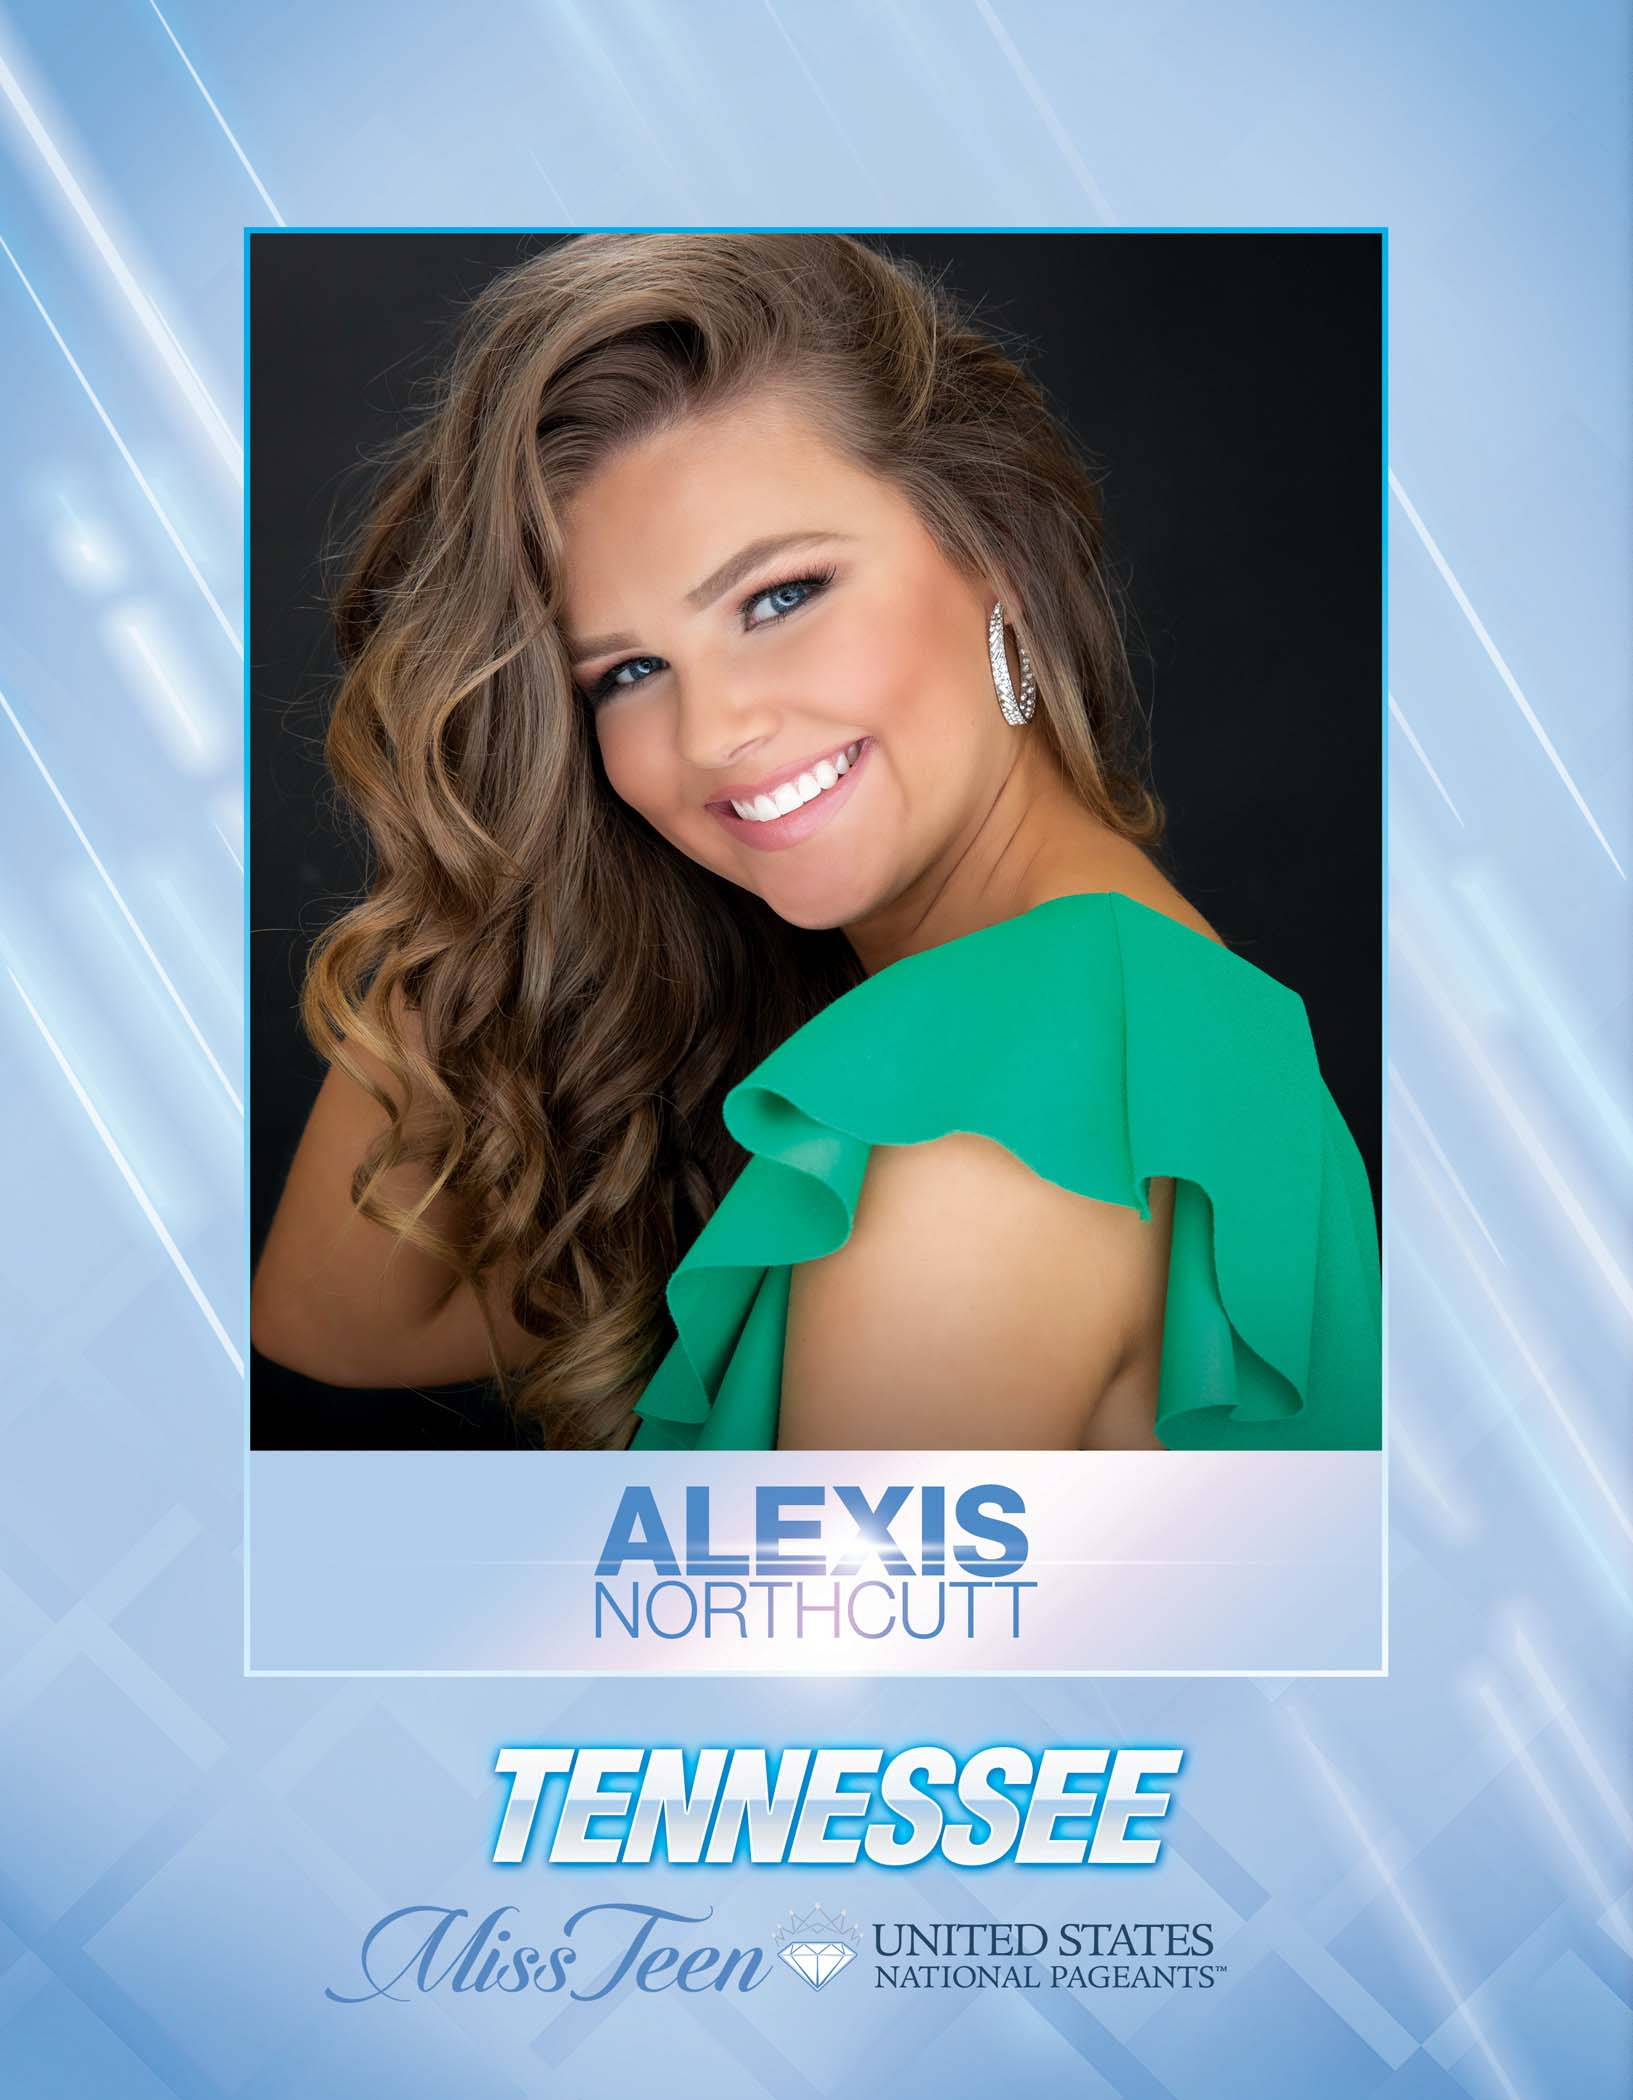 Alexis Northcutt Miss Teen Tennessee United States - 2021